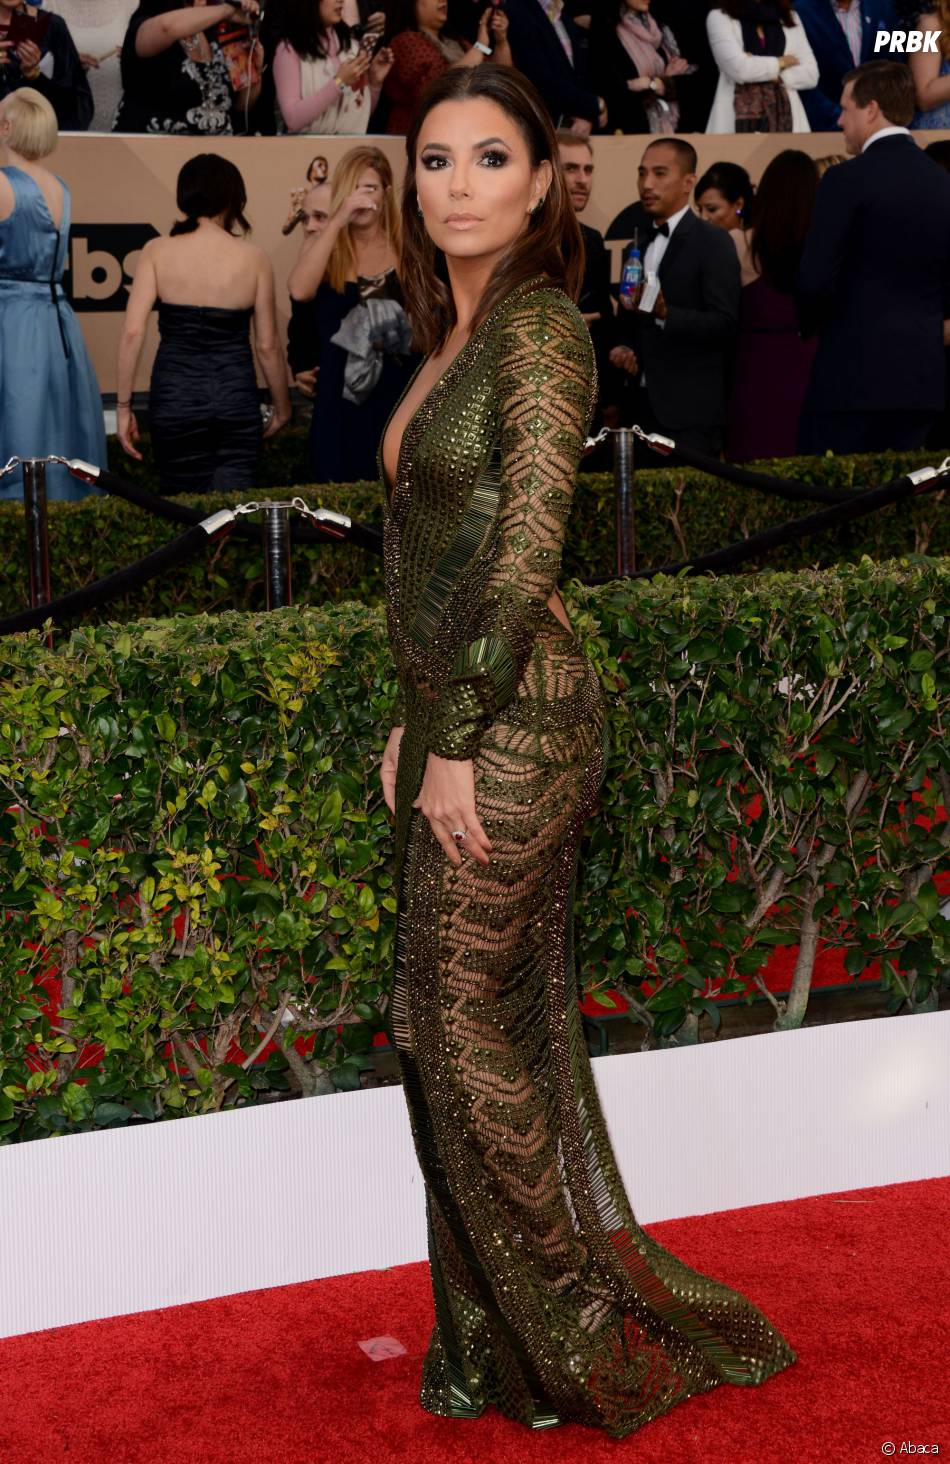 Eva Longoria hot lors des SAG Awards 2016, le 30 janvier, à Los Angeles